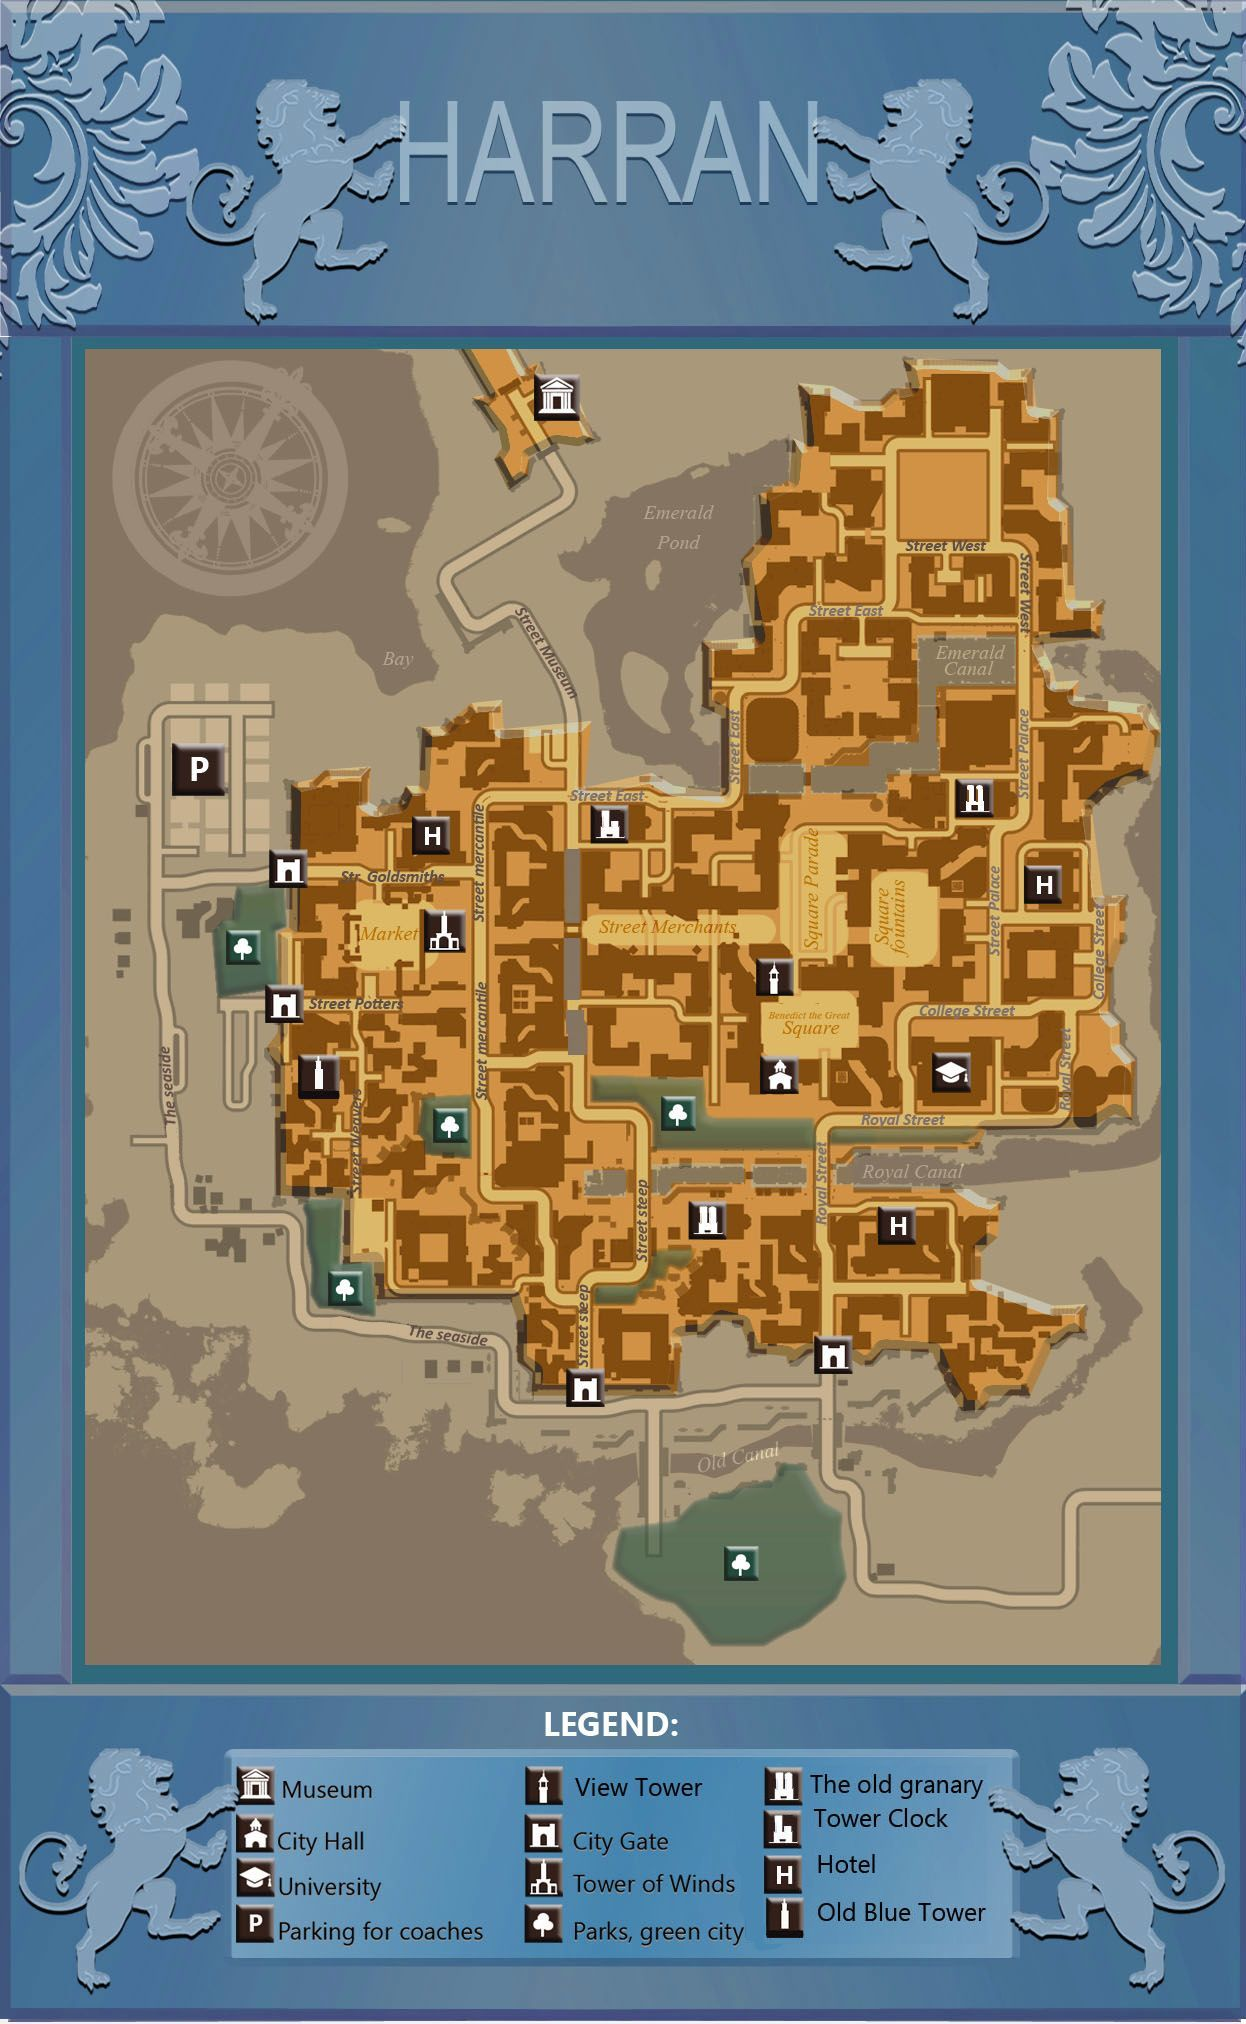 The City of Harran